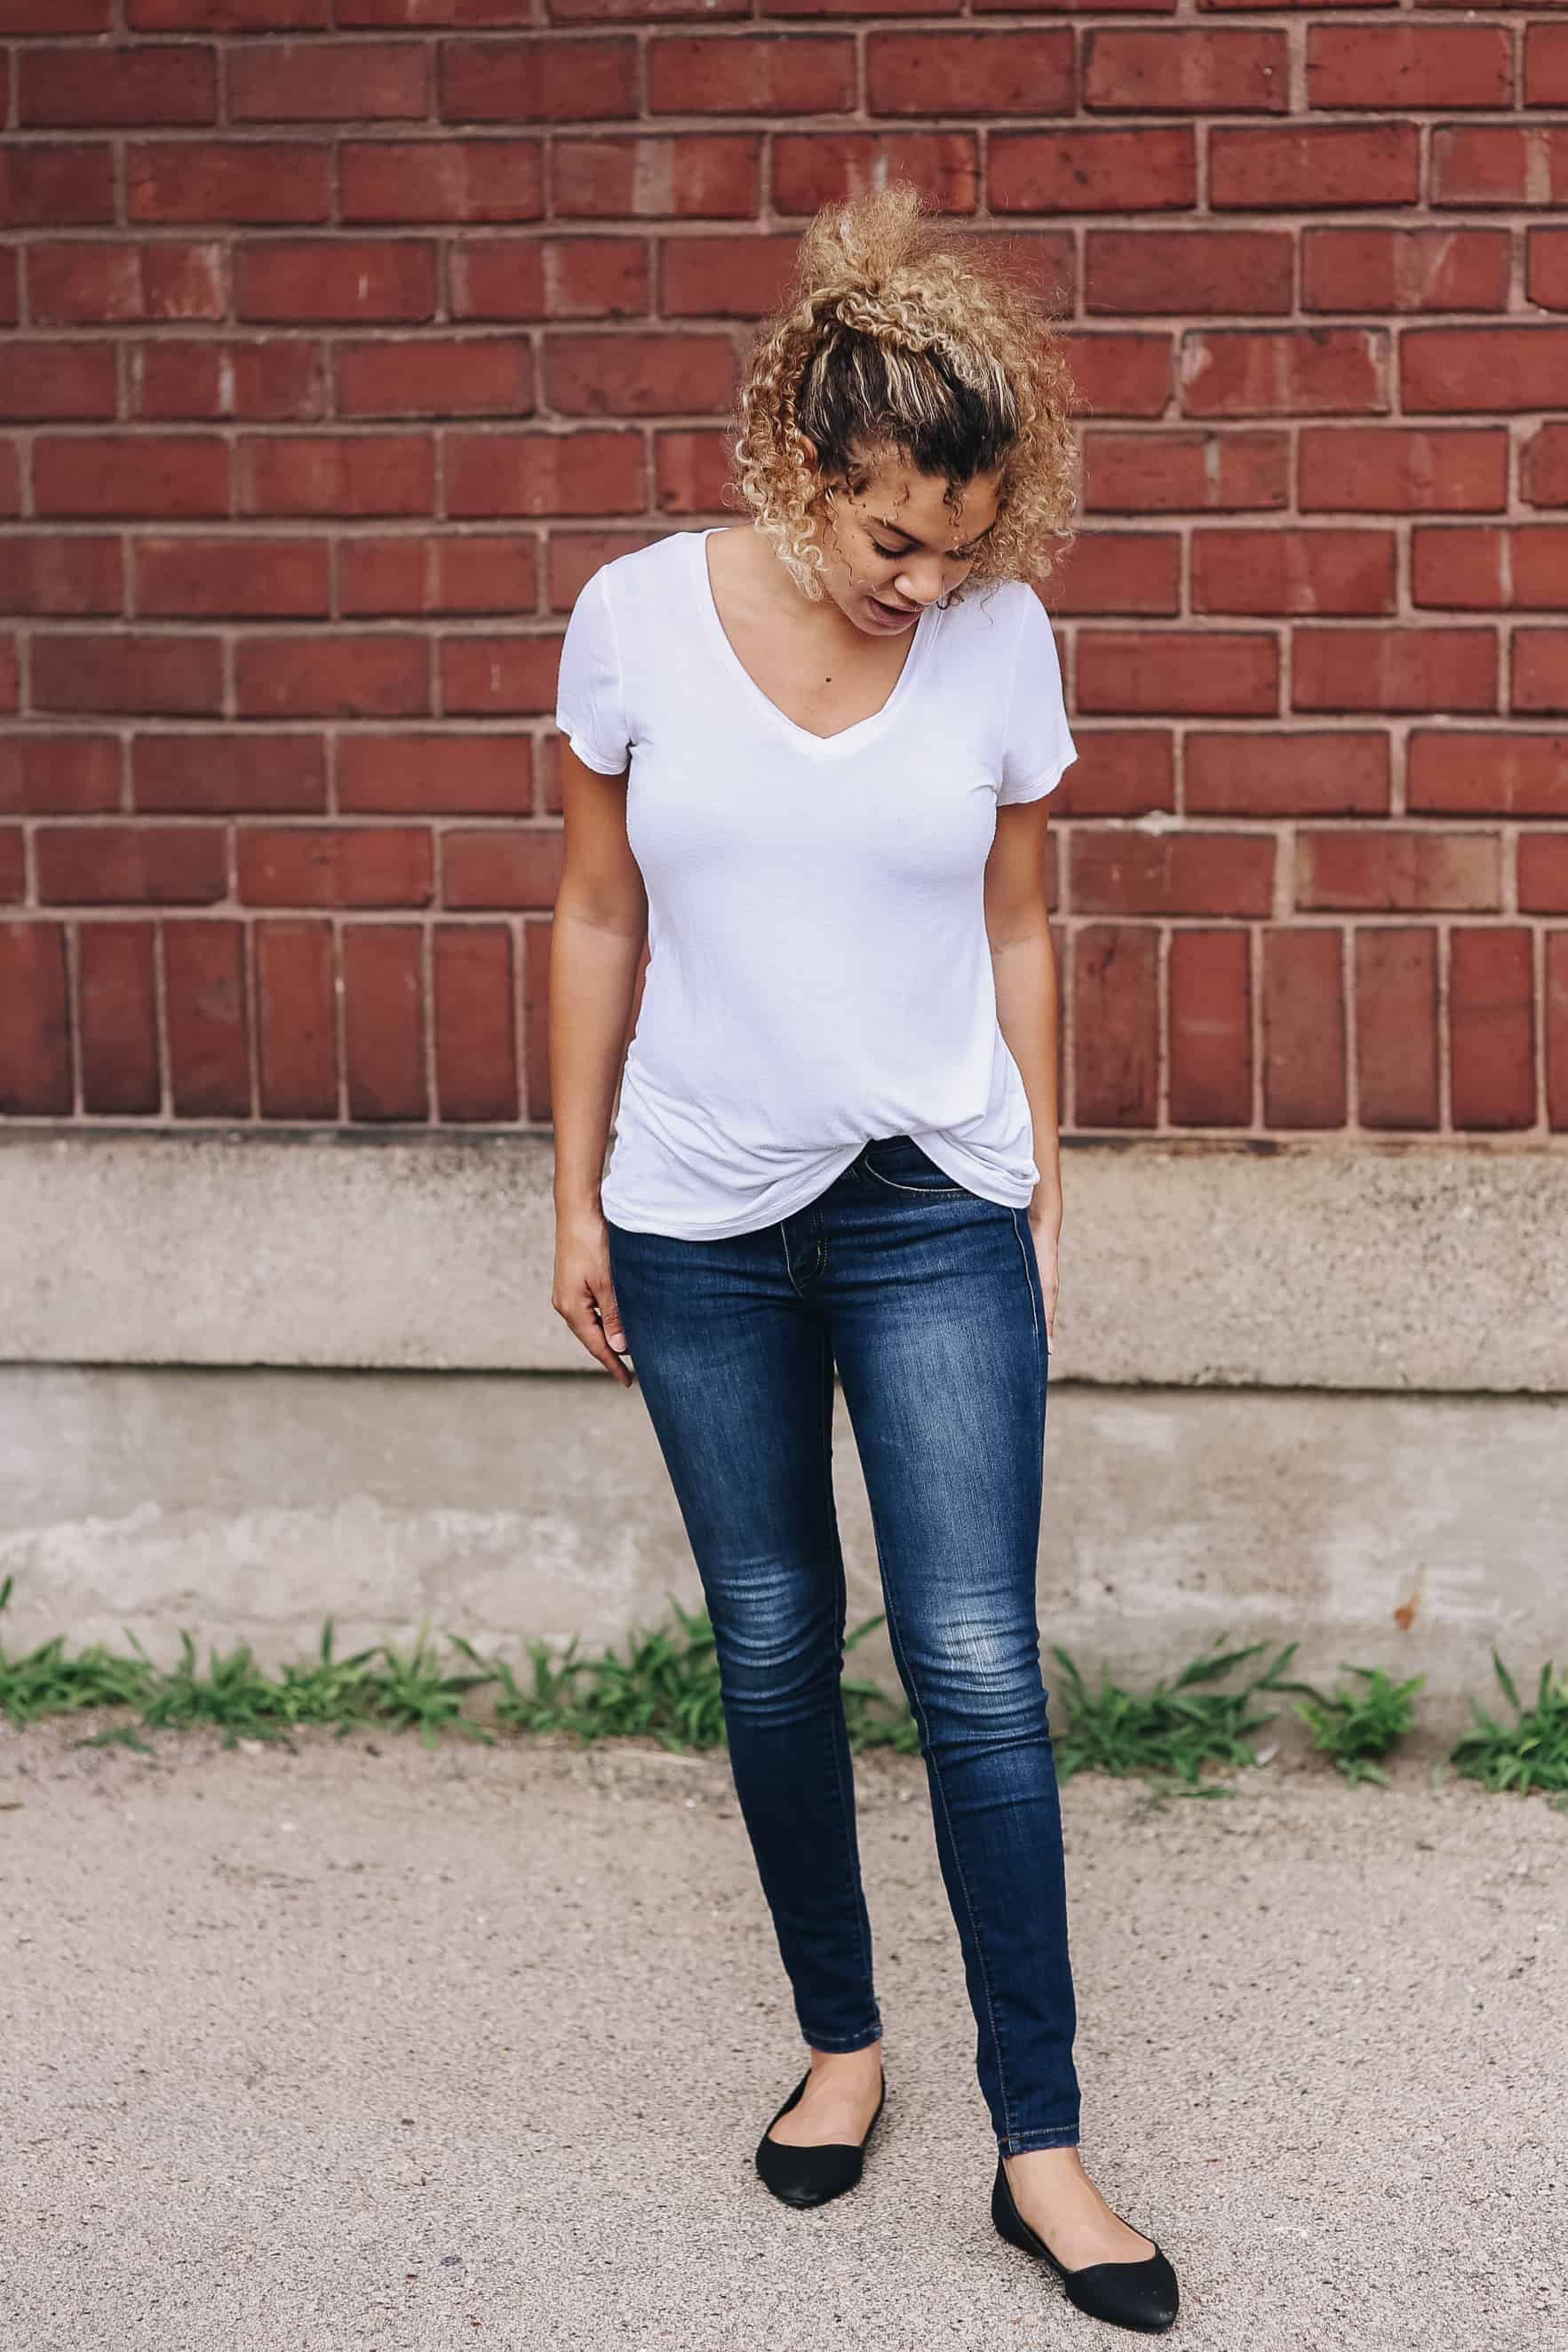 elevate a simple tee and jeans outfit